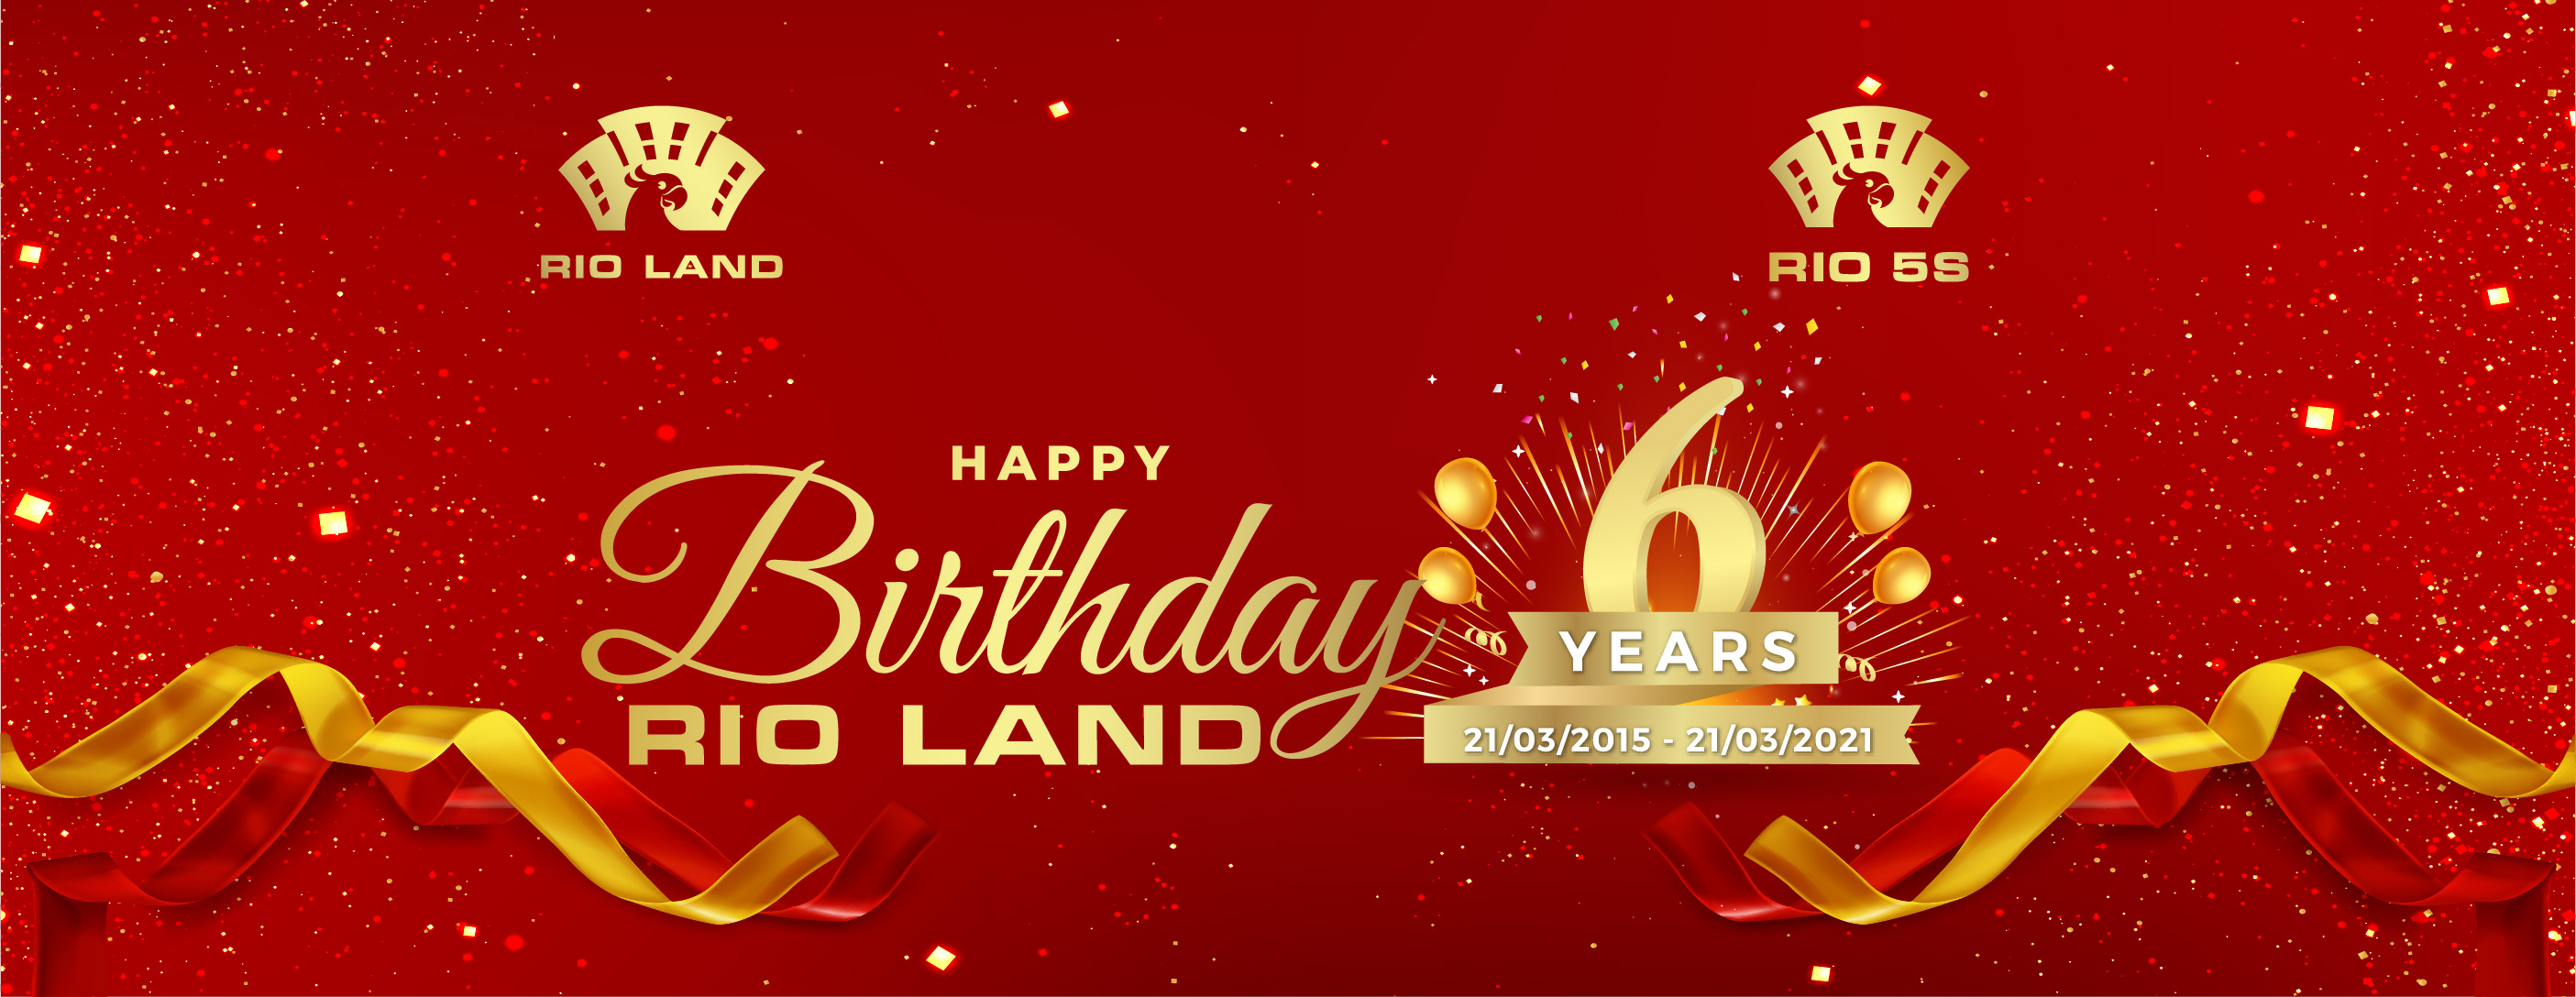 HAPPY BIRTHDAY RIOLAND 6 YEARS